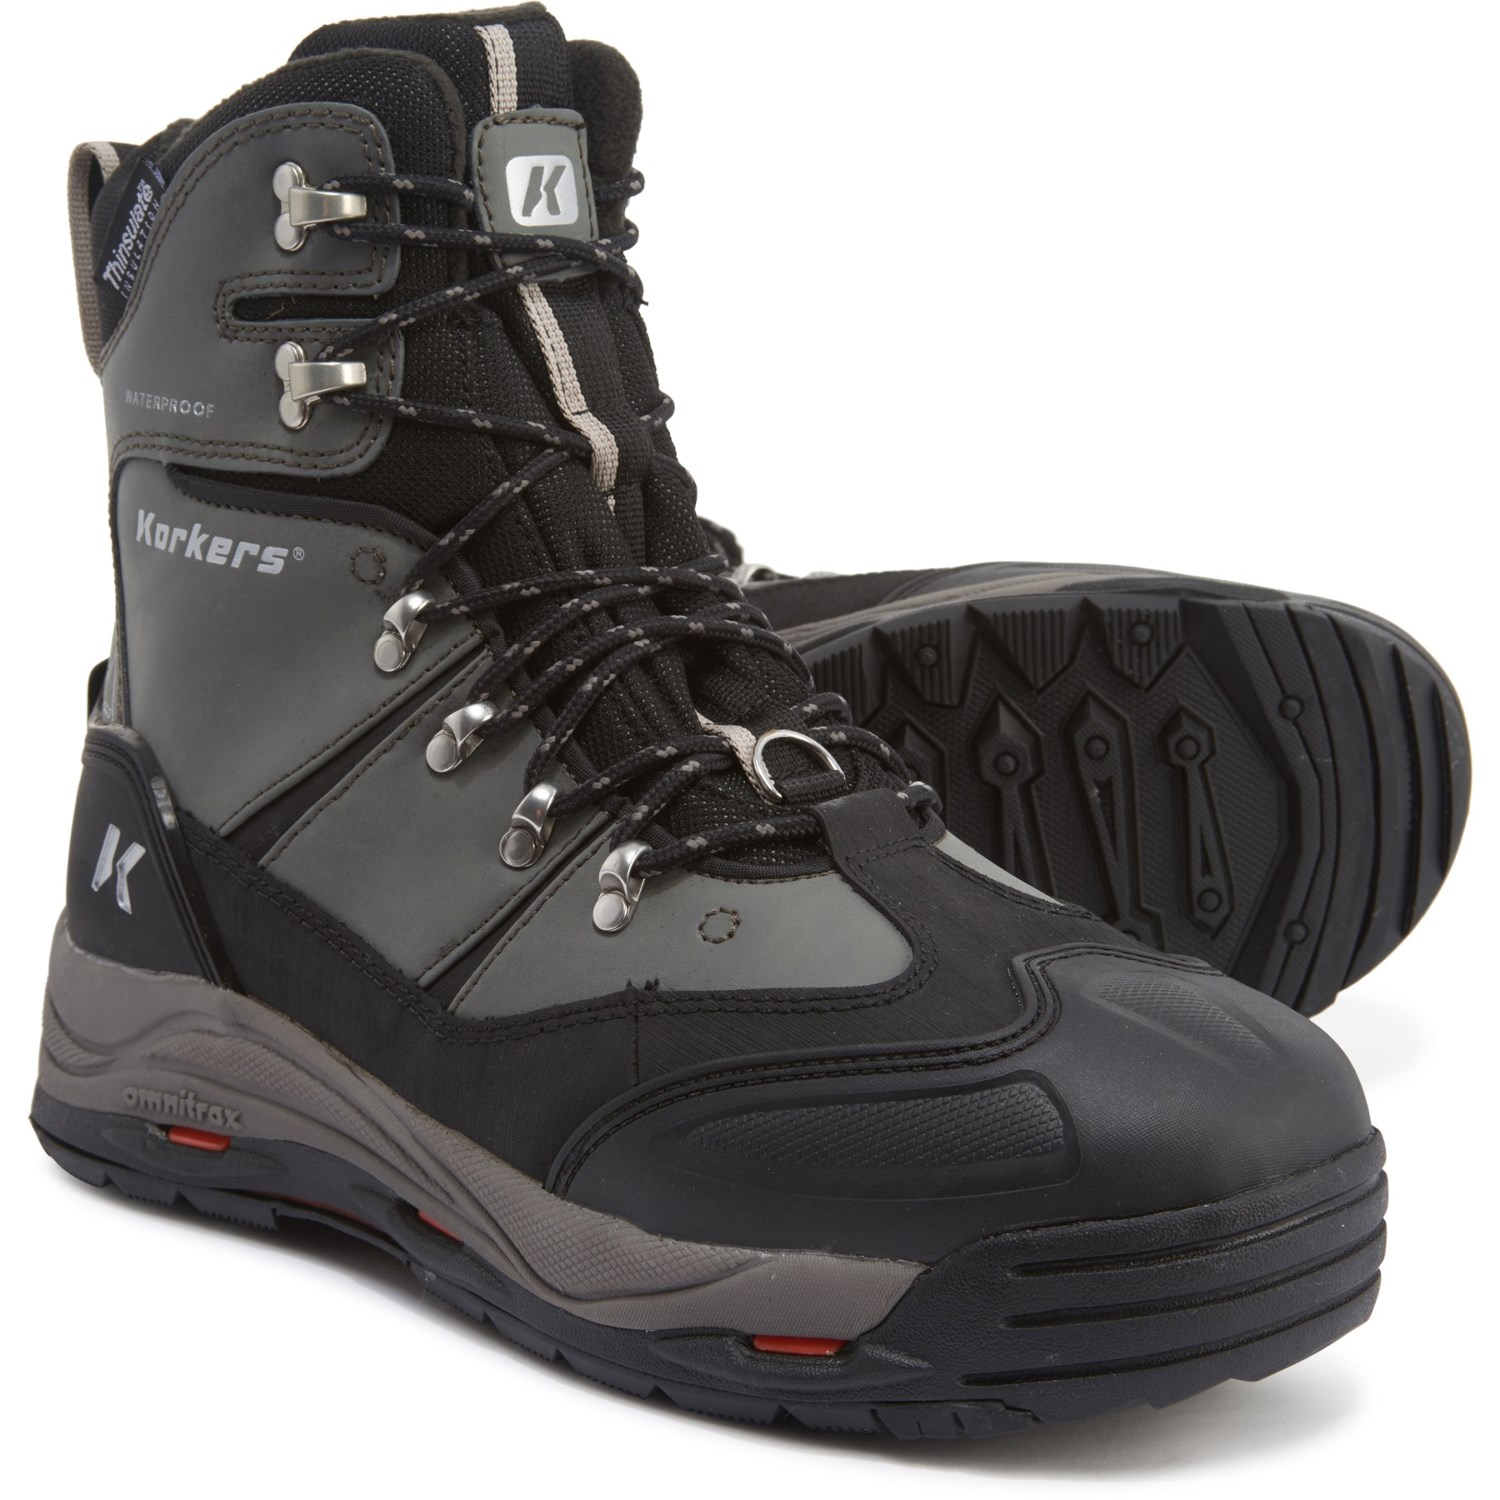 Korkers SnowJack Boot | Boots, Insulated boots, Mens snow boots